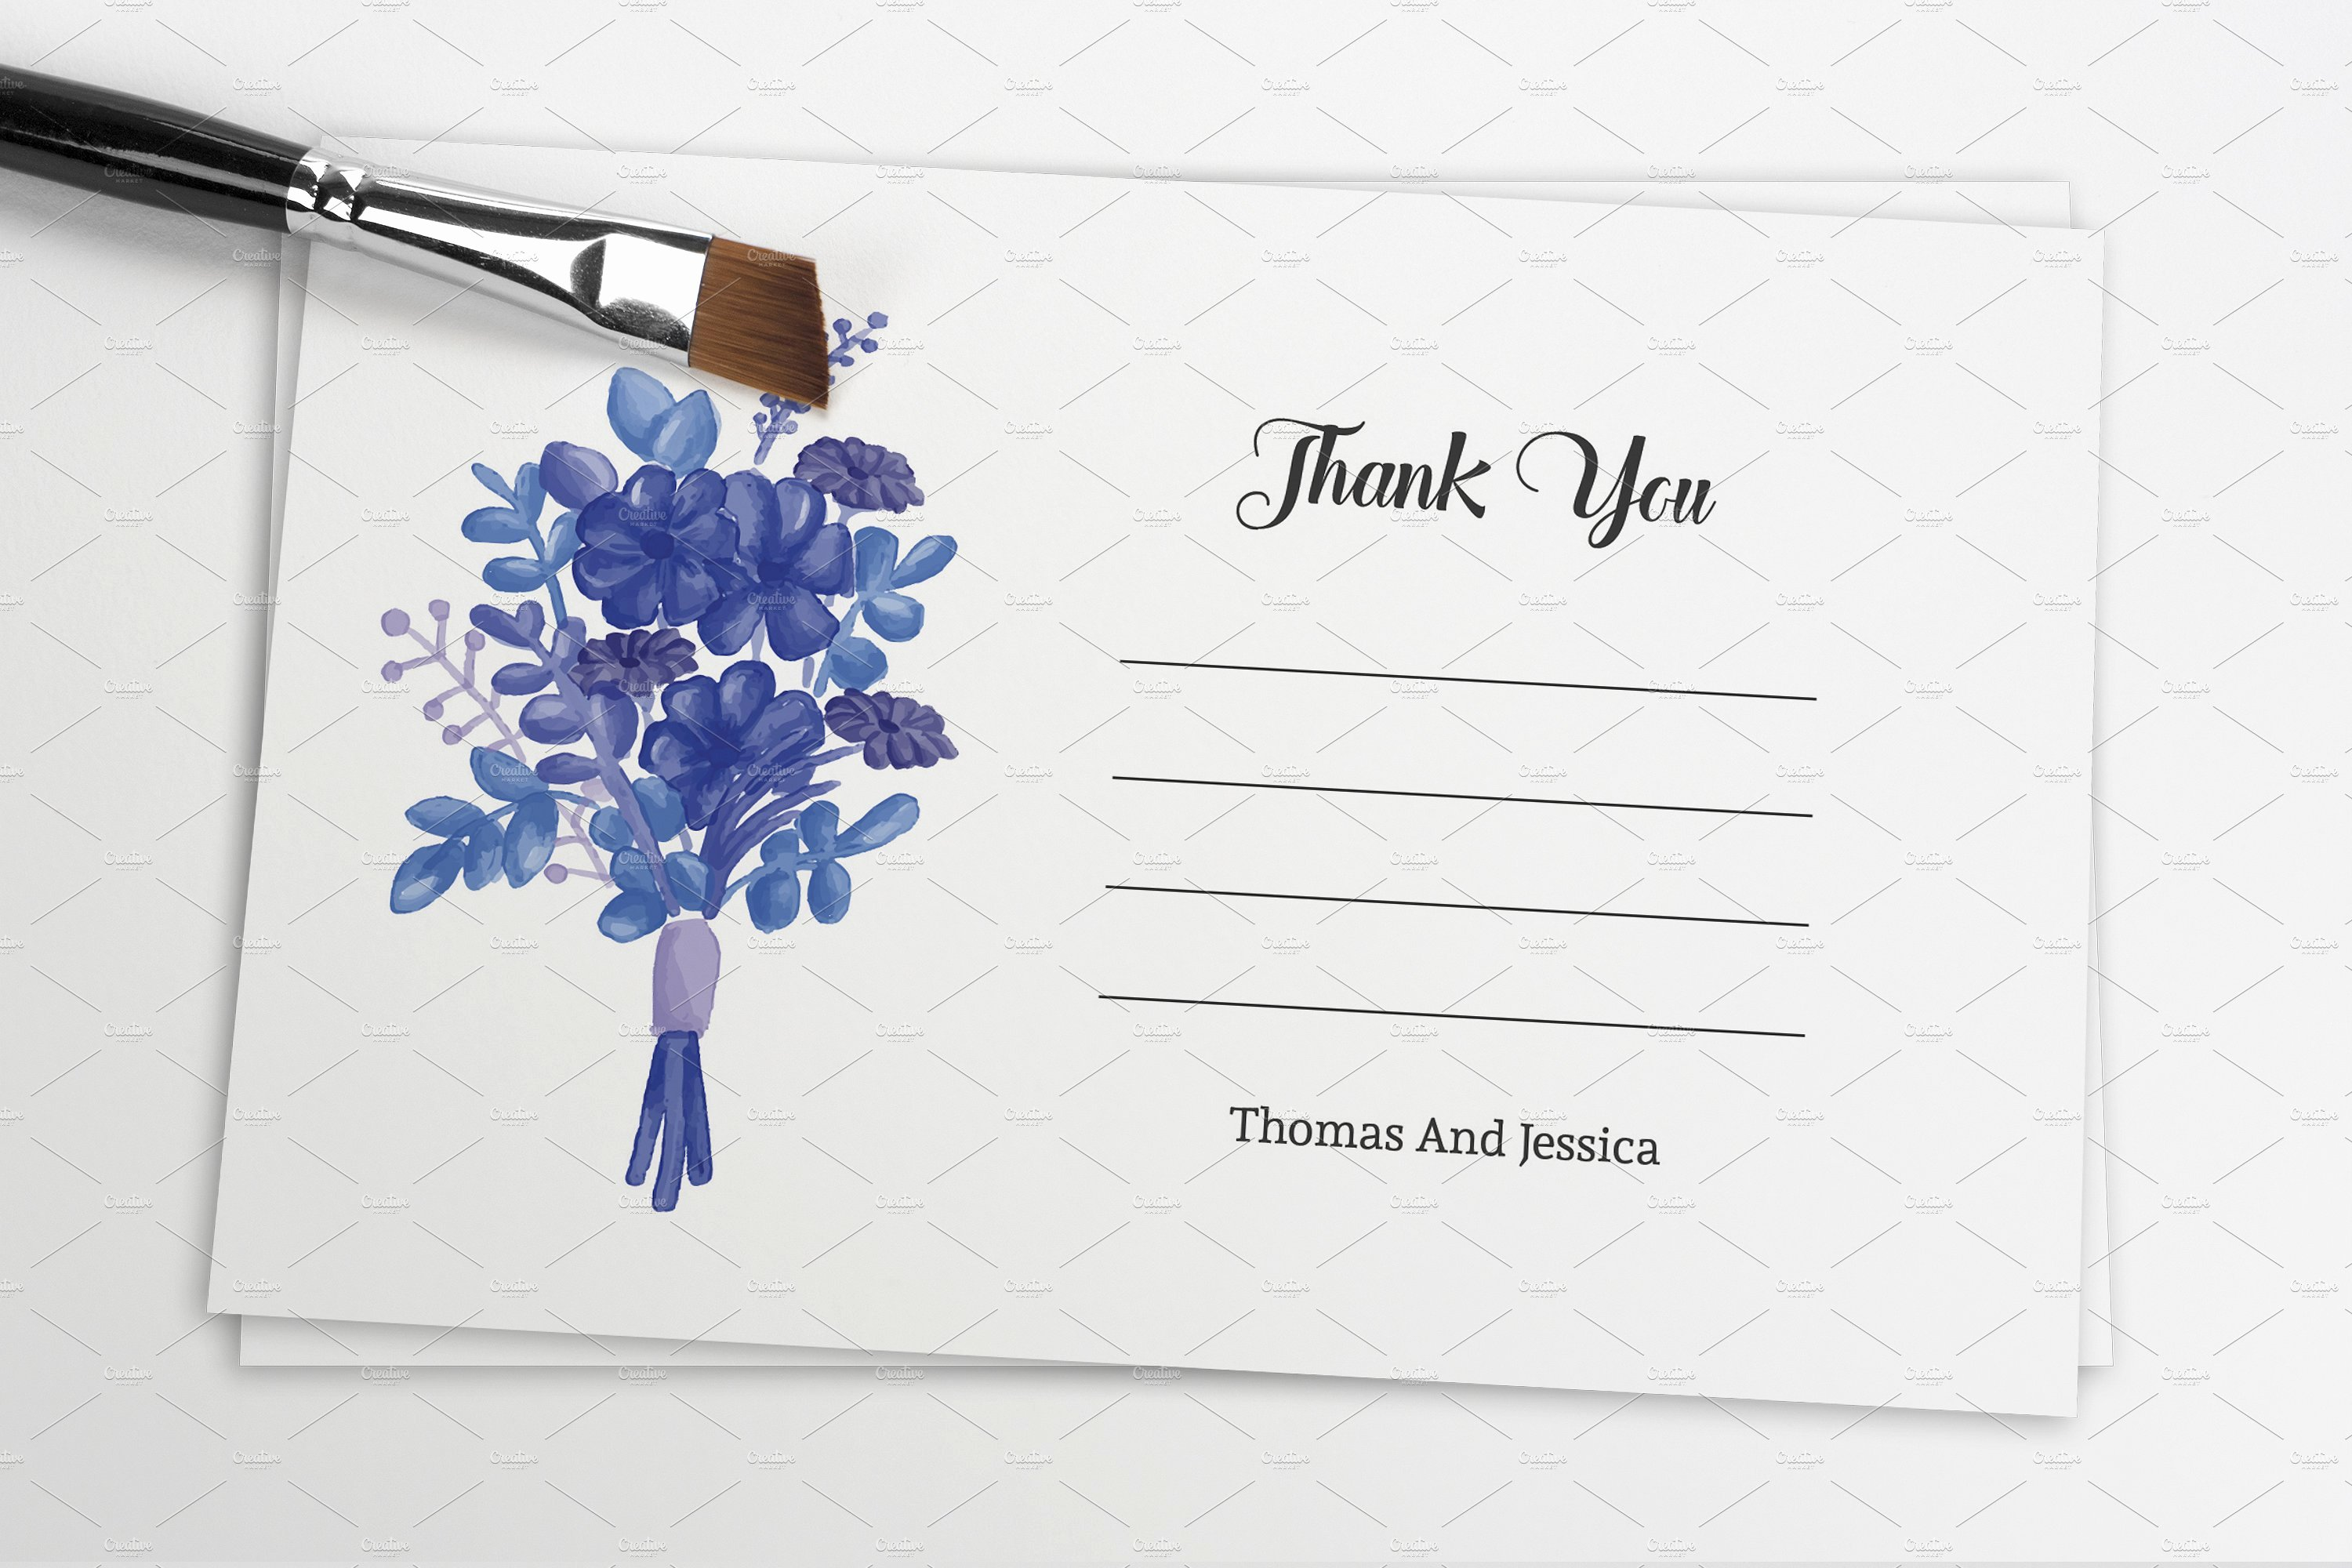 Thank You Card Template Word Unique Microsoft Word Thank You Card Template